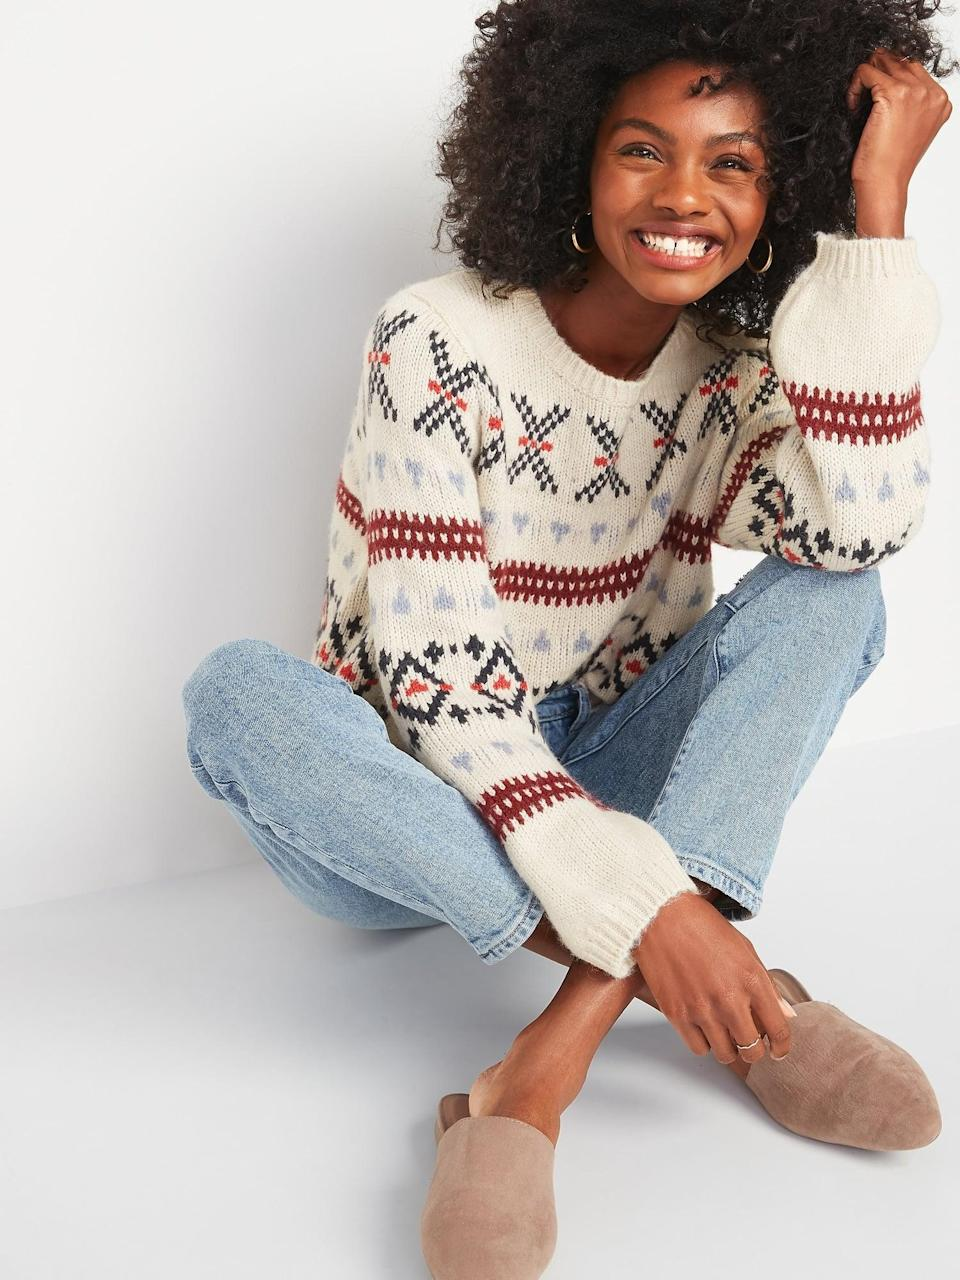 <p>Is it time to start wearing festive holiday sweaters? I say yes and plan on getting this <span>Cozy Fair Isle Blouson-Sleeve Sweater</span> ($40, originally $45).</p>